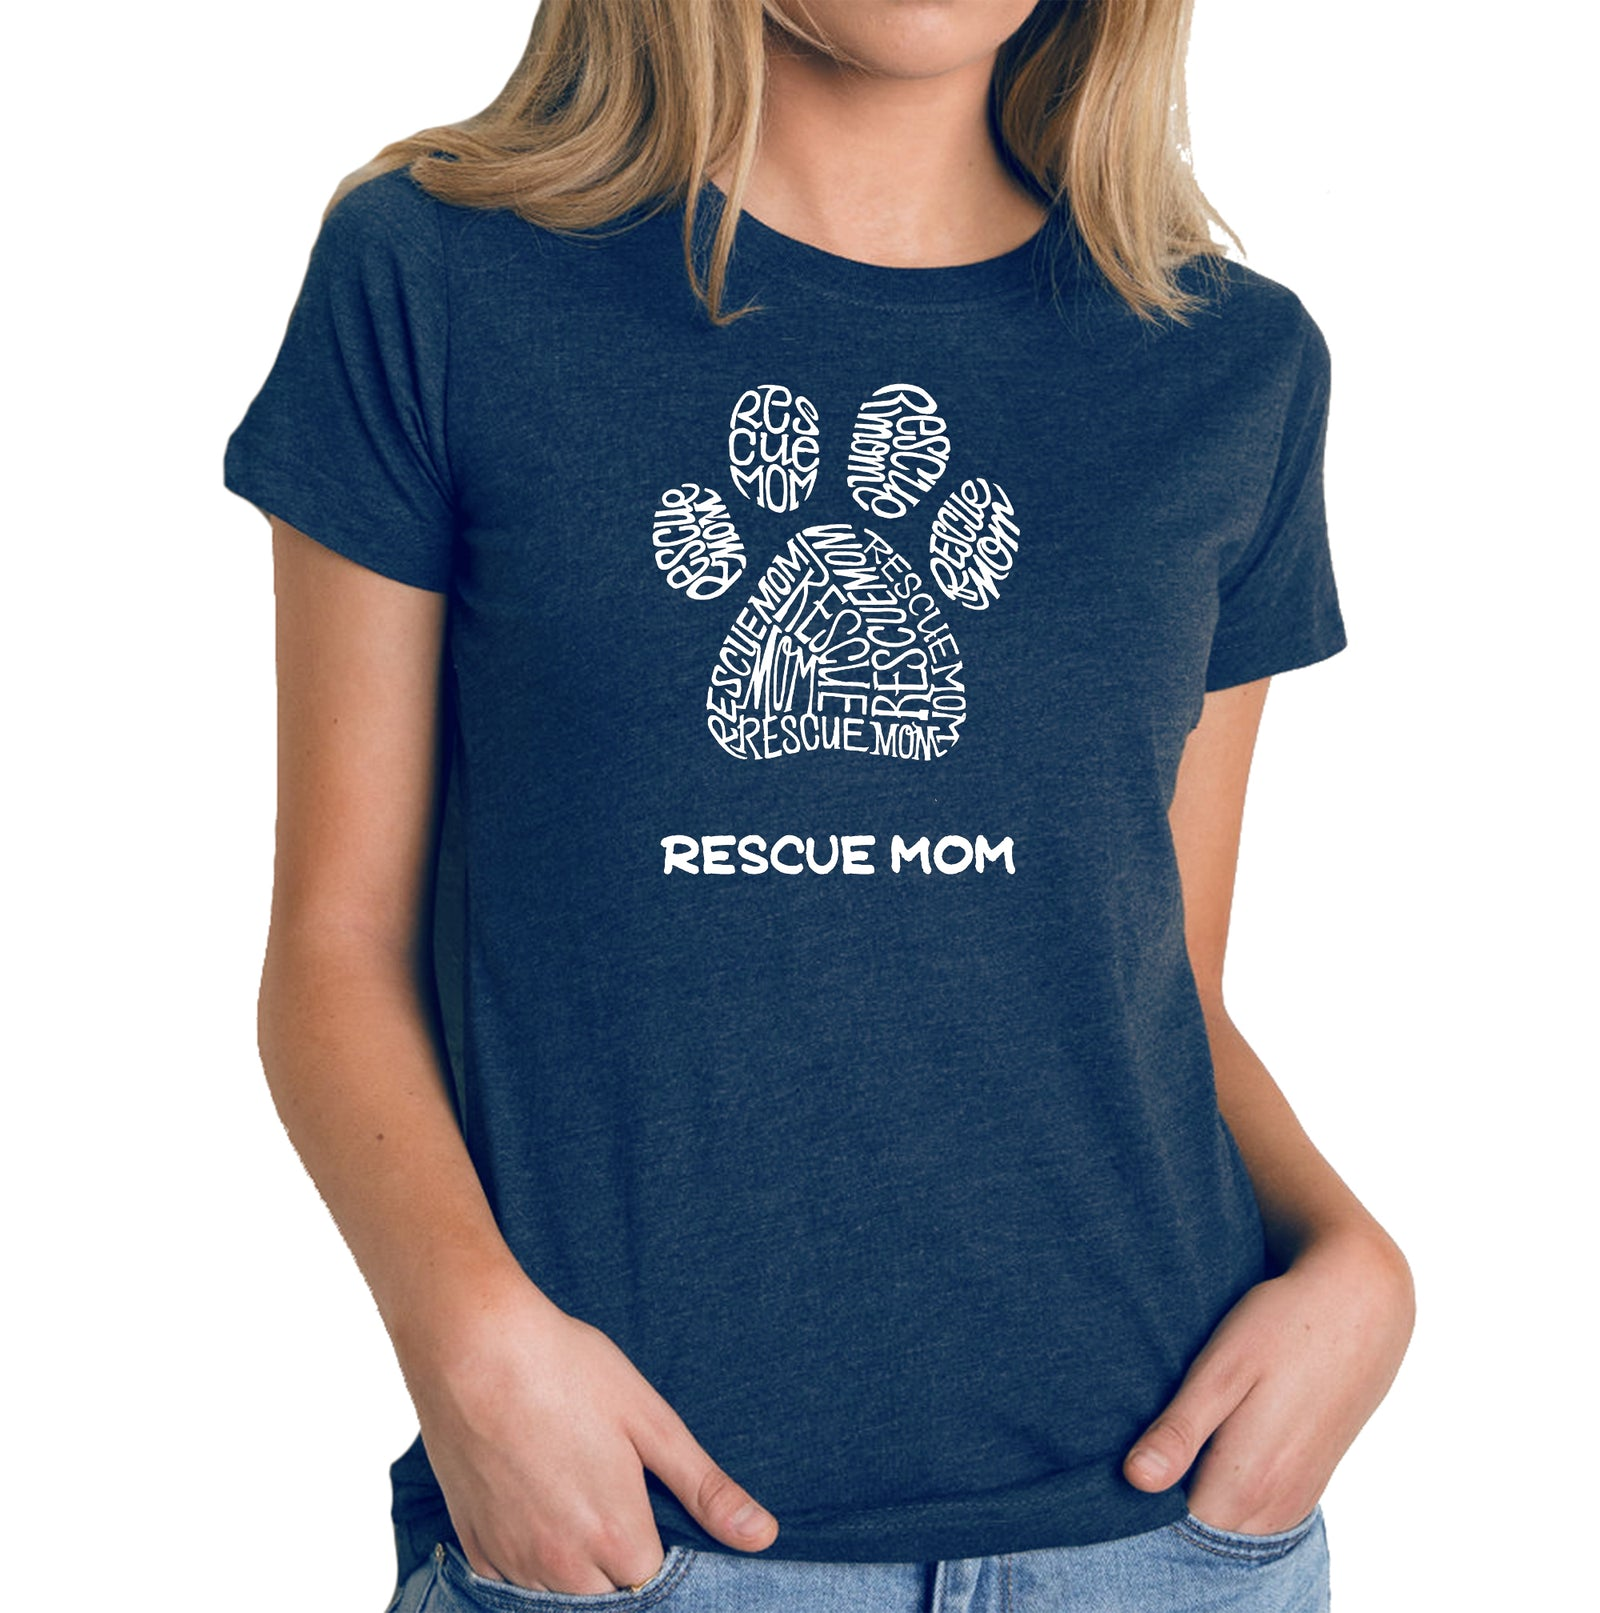 Women's Premium Blend Word Art T-shirt - Rescue Mom